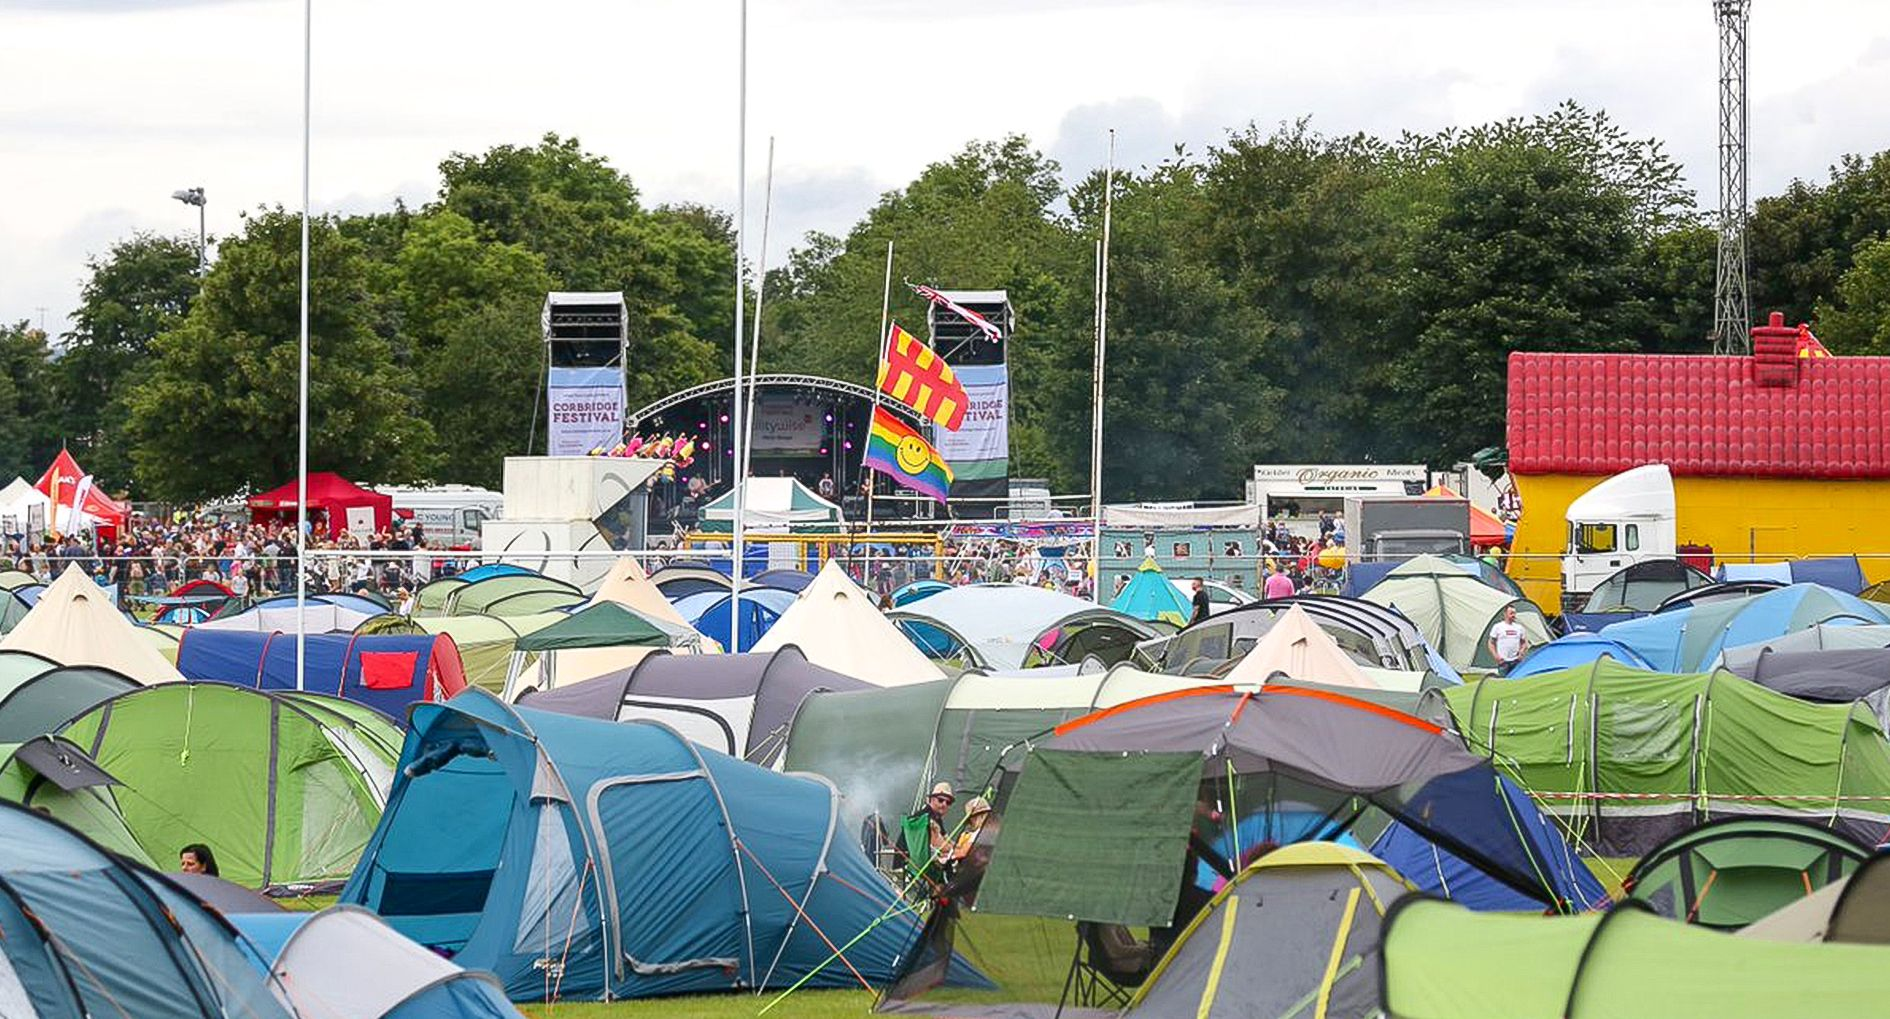 A view of the camping area within Corbridge Festival with the sun shining